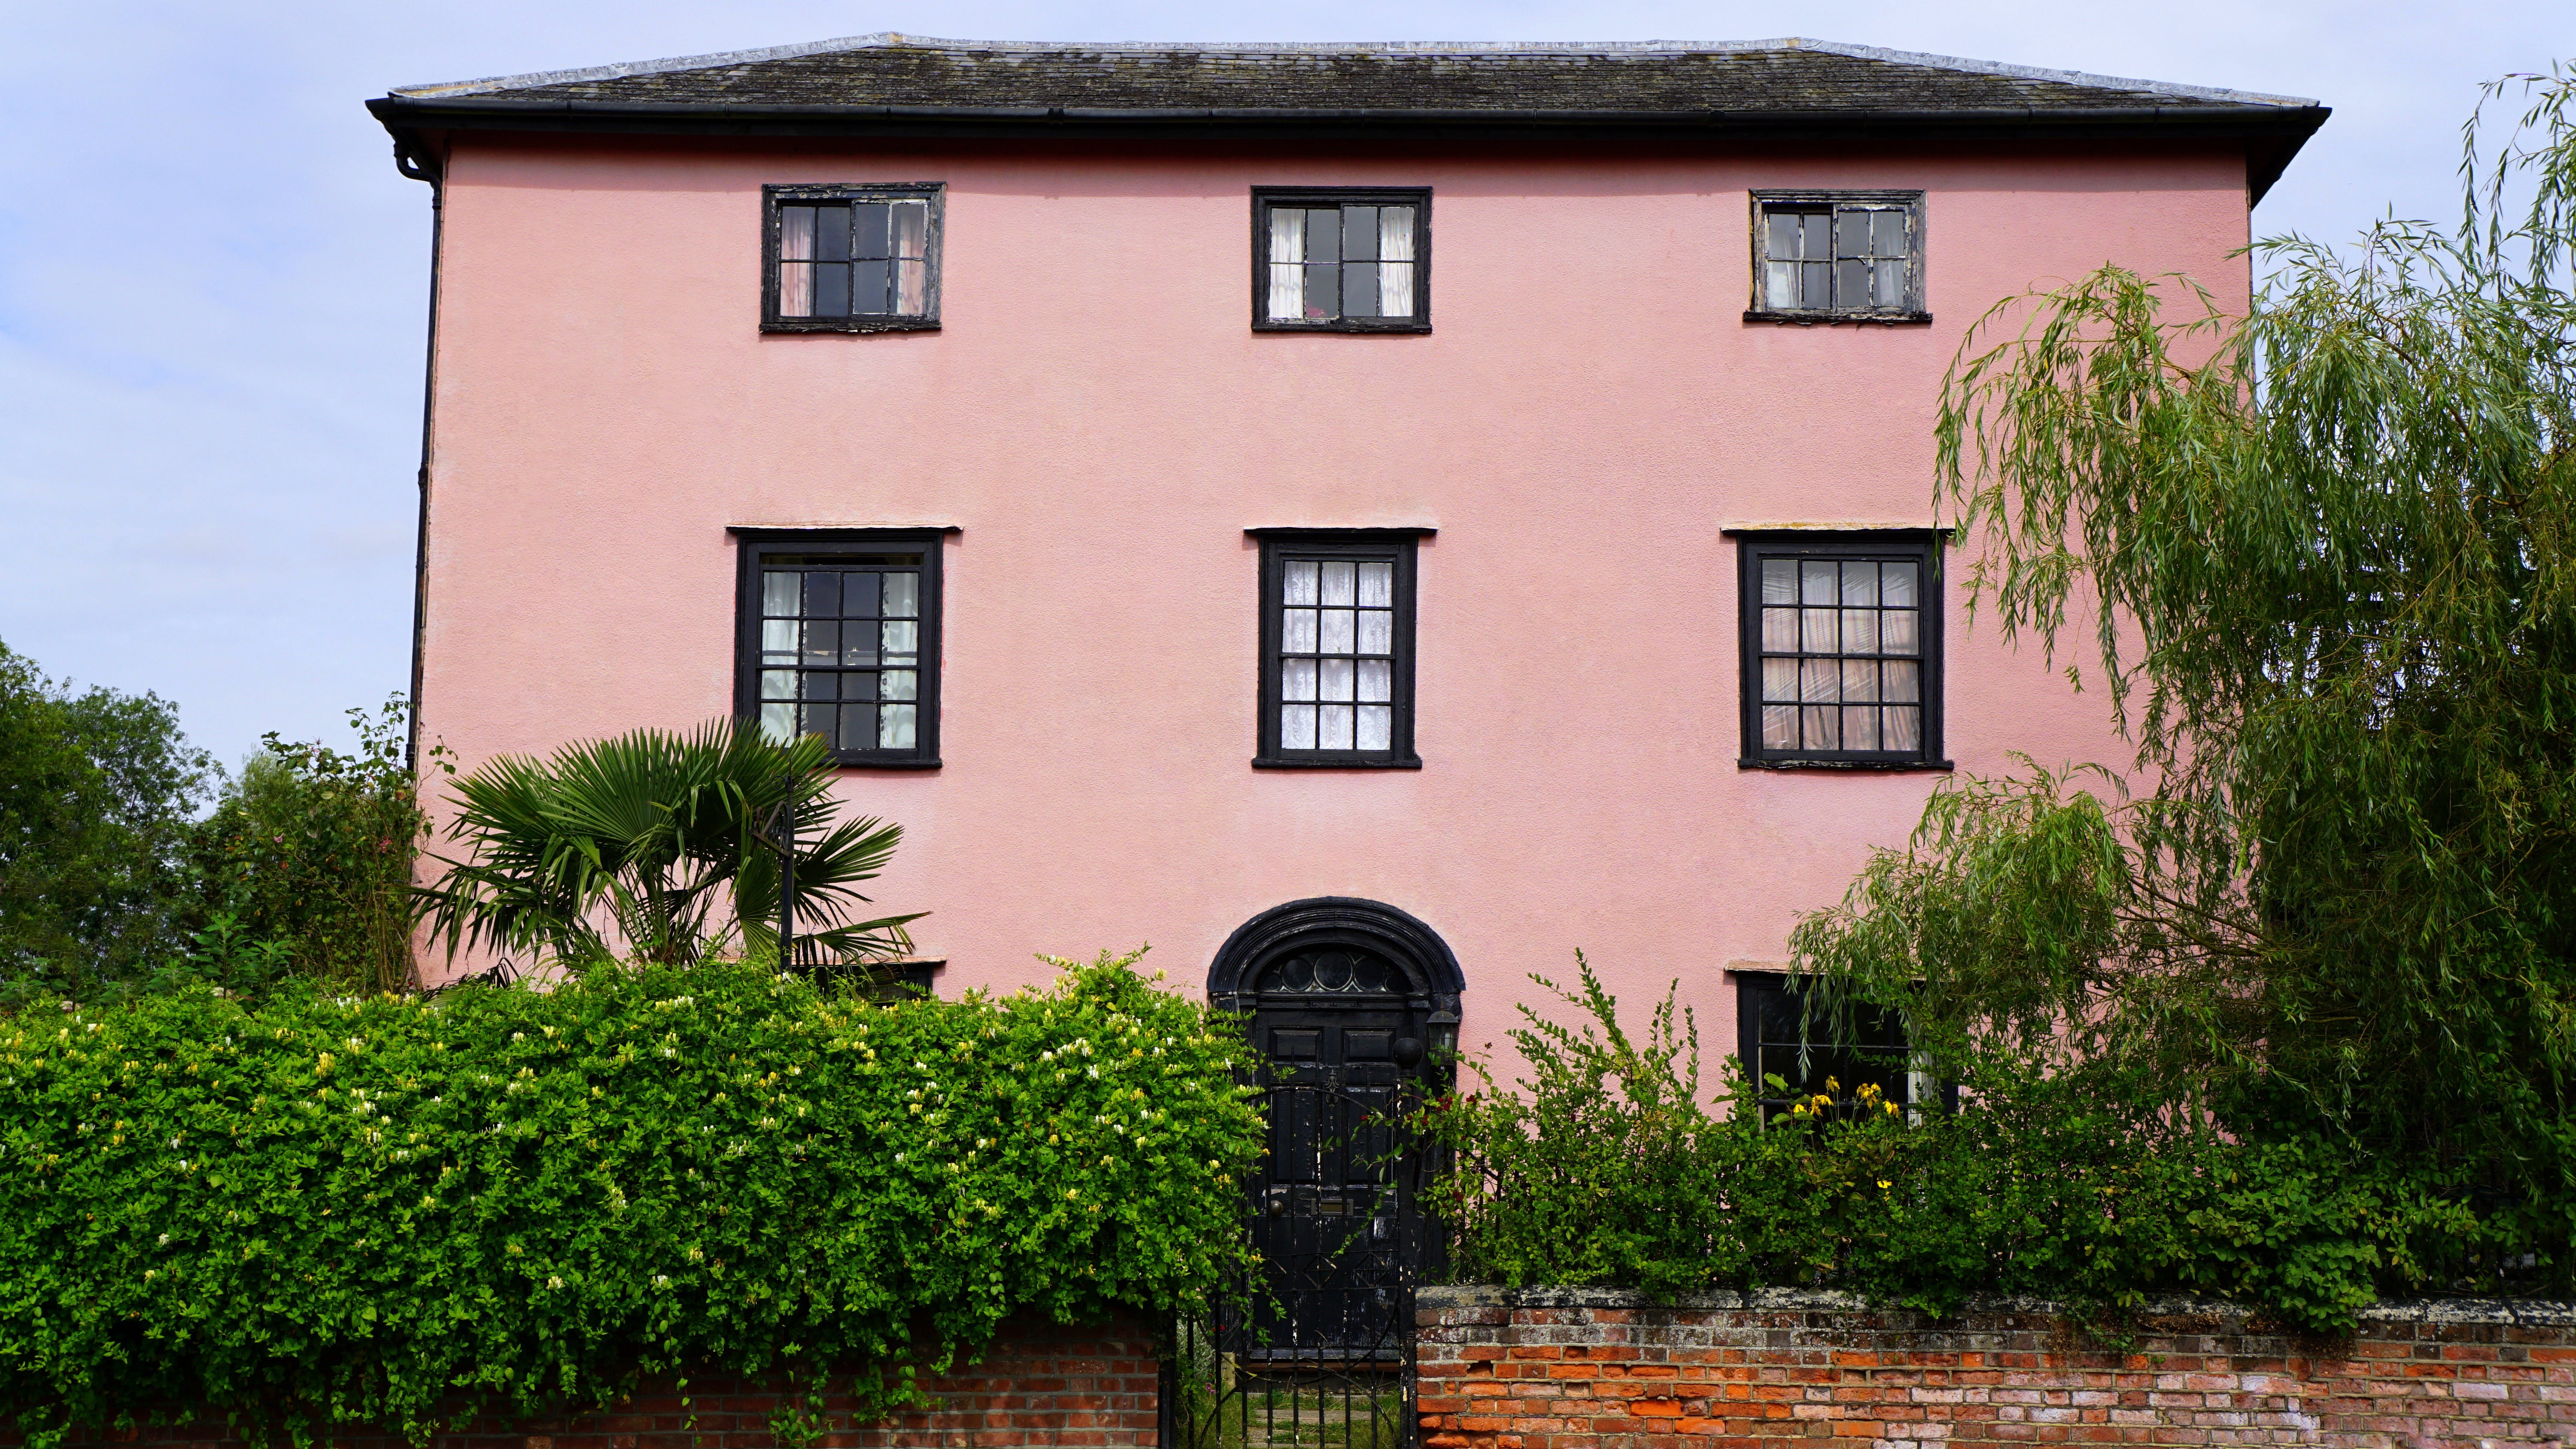 Pink House Facade With Black Gate